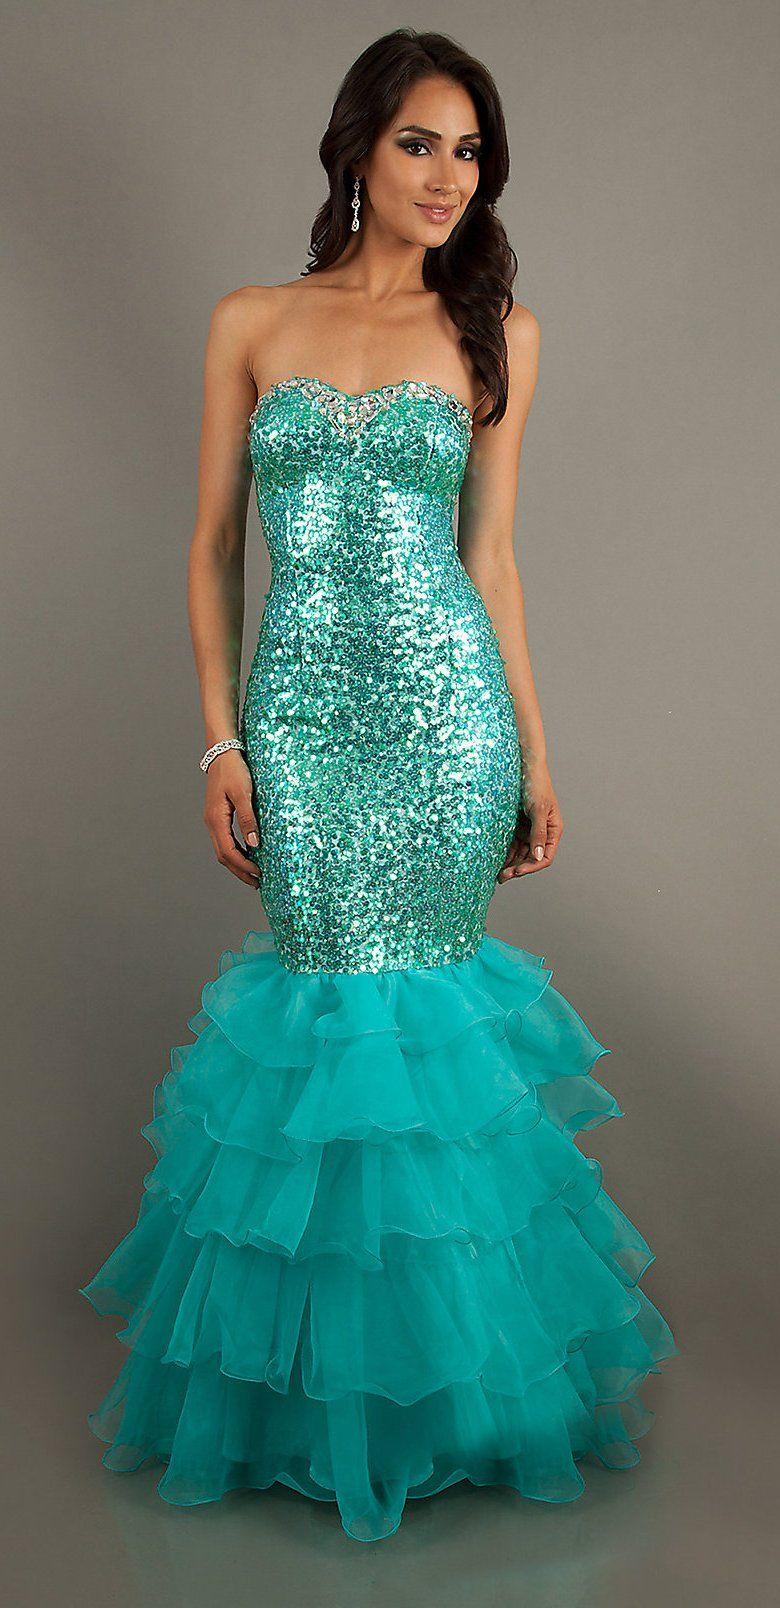 Aqua green sequins mermaid prom dress long sweetheart neck for Tight fitted mermaid wedding dresses